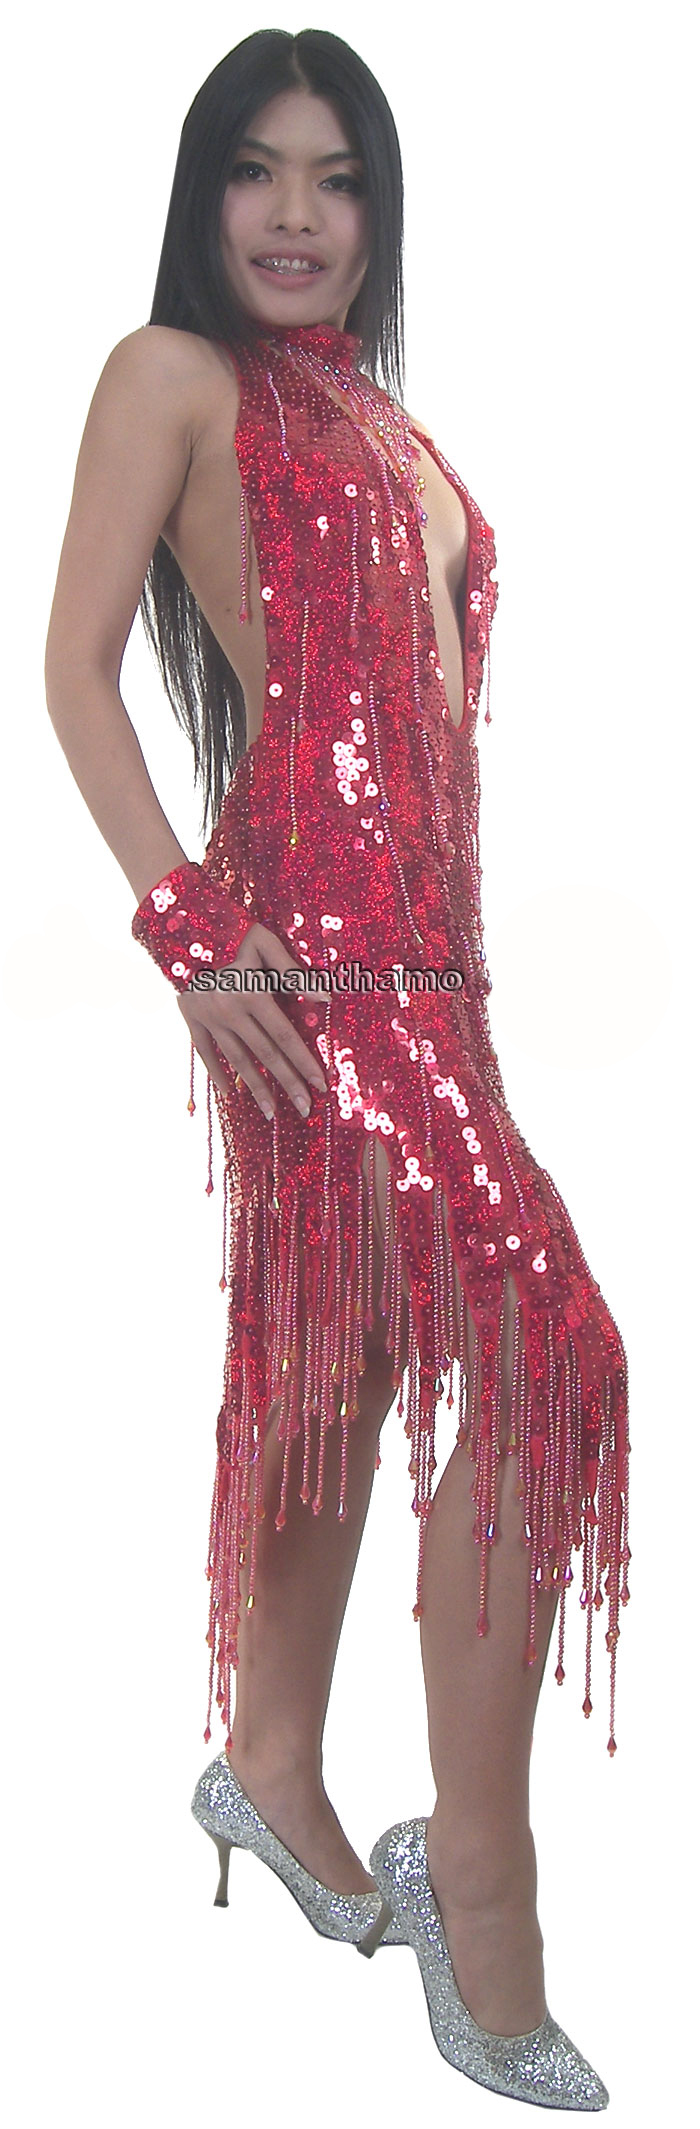 https://michaeljacksoncelebrityclothing.com/Celebrity-Costumes/CBS0888-salsa-dance-dress.jpg